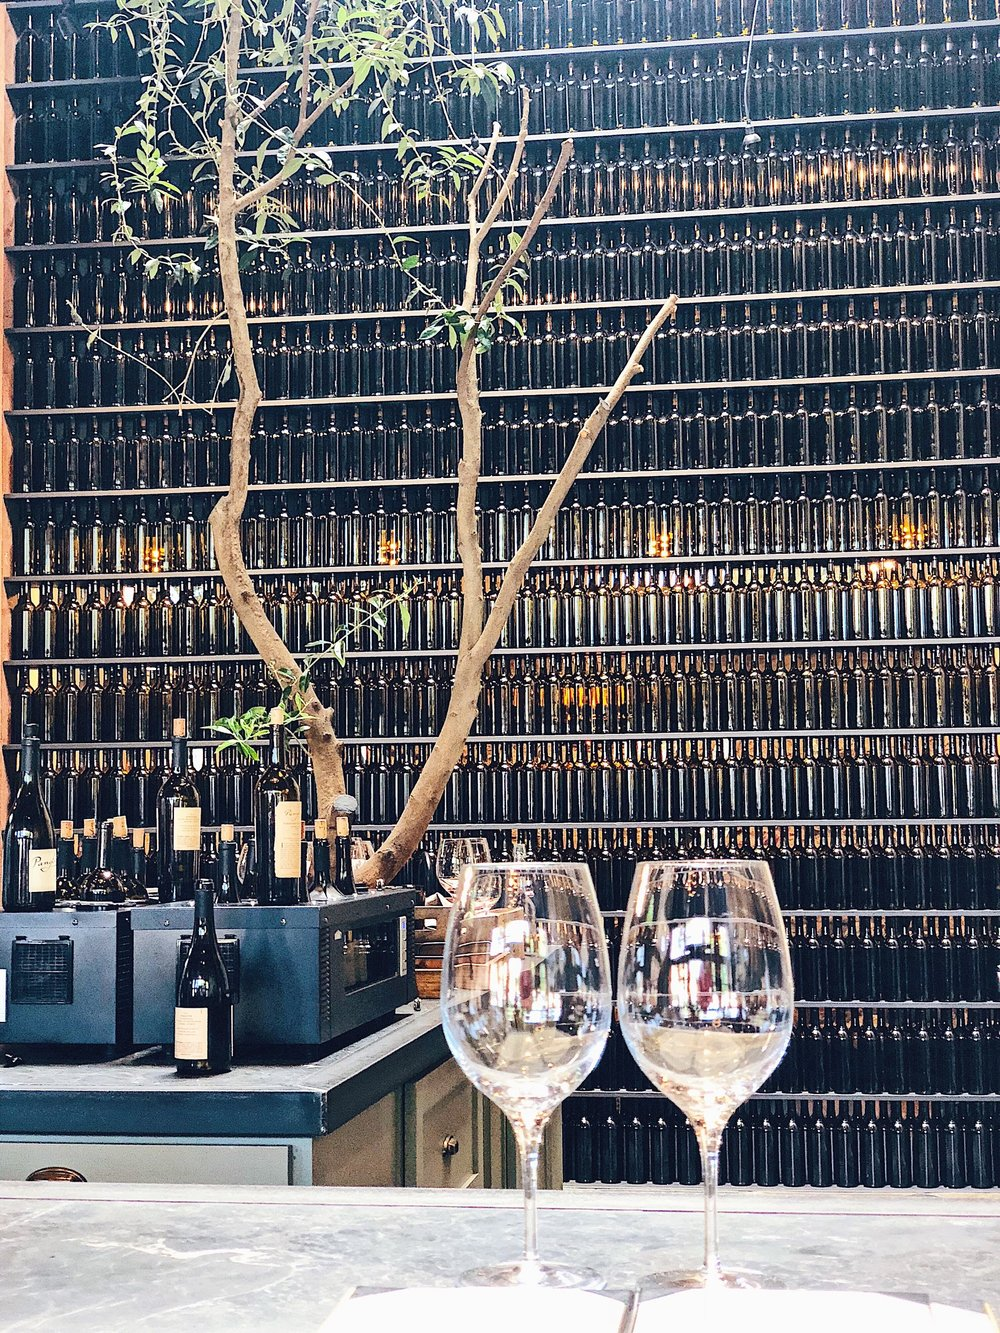 Wine Bottle Wall At Pangloss Cellars